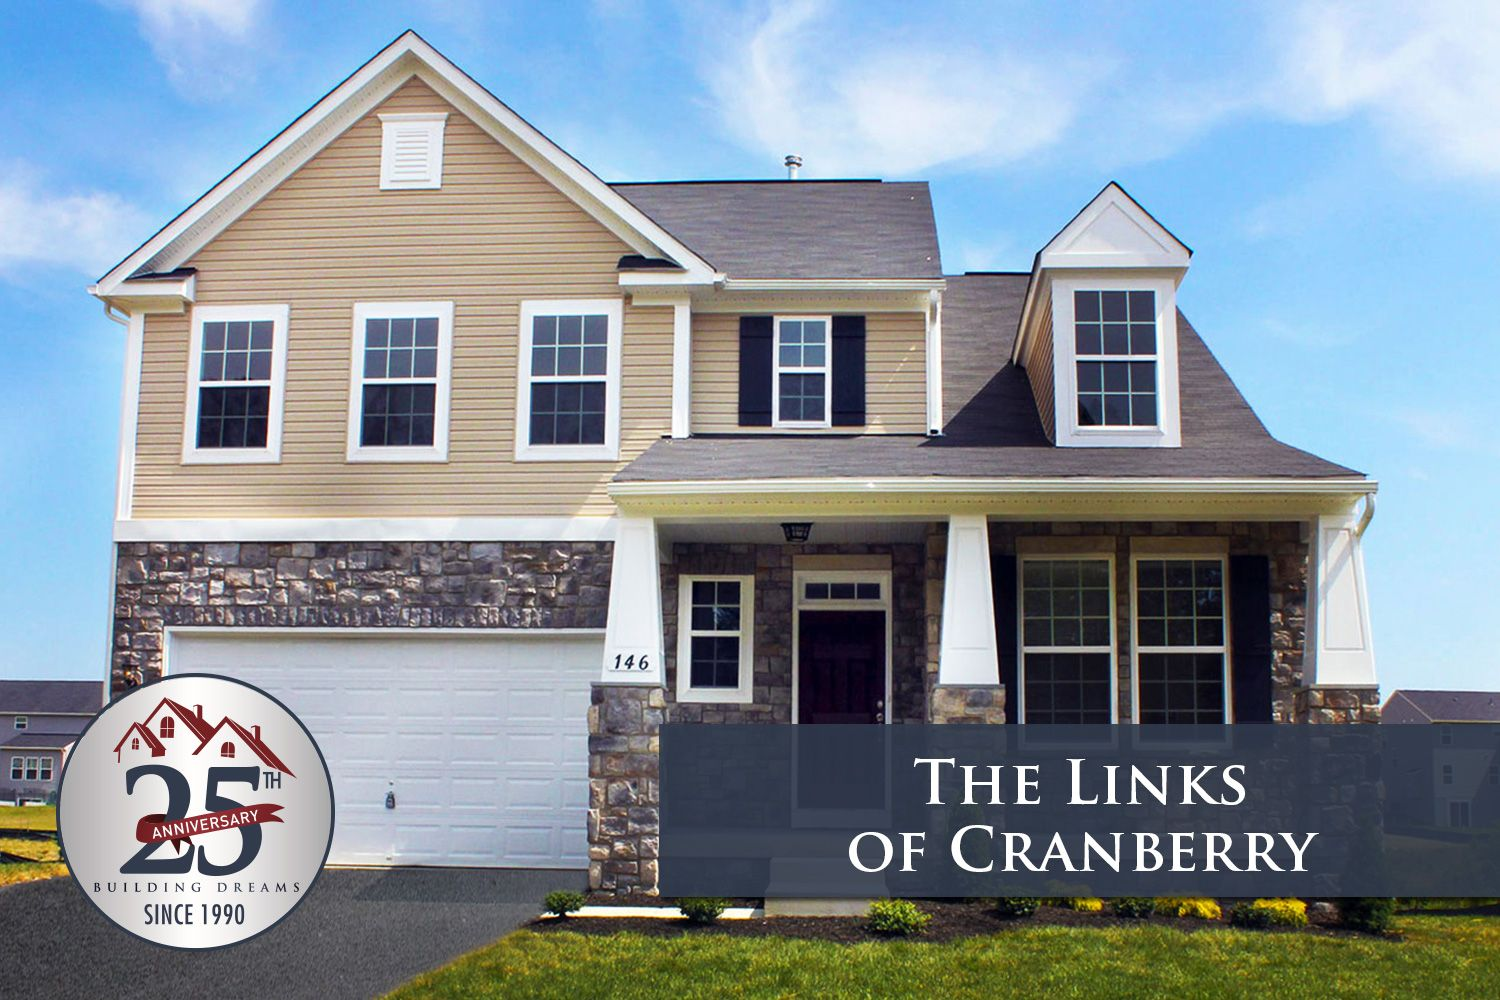 Links of Cranberry